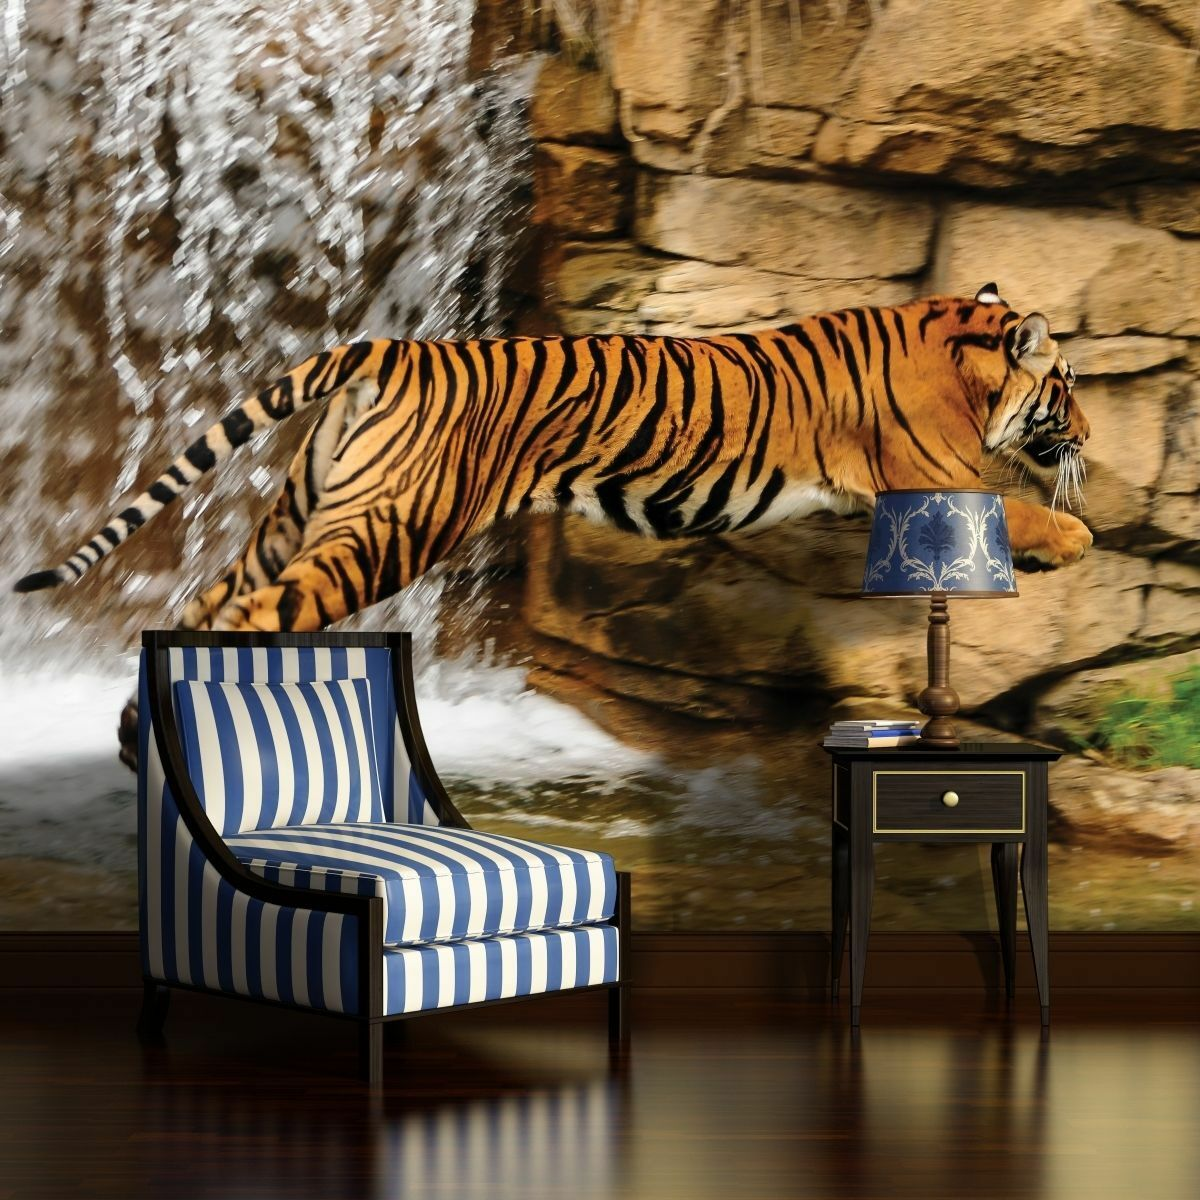 fototapeten fototapete tapete wandbild poster tier natur tiger wasser 1963 p8 eur 39 90. Black Bedroom Furniture Sets. Home Design Ideas